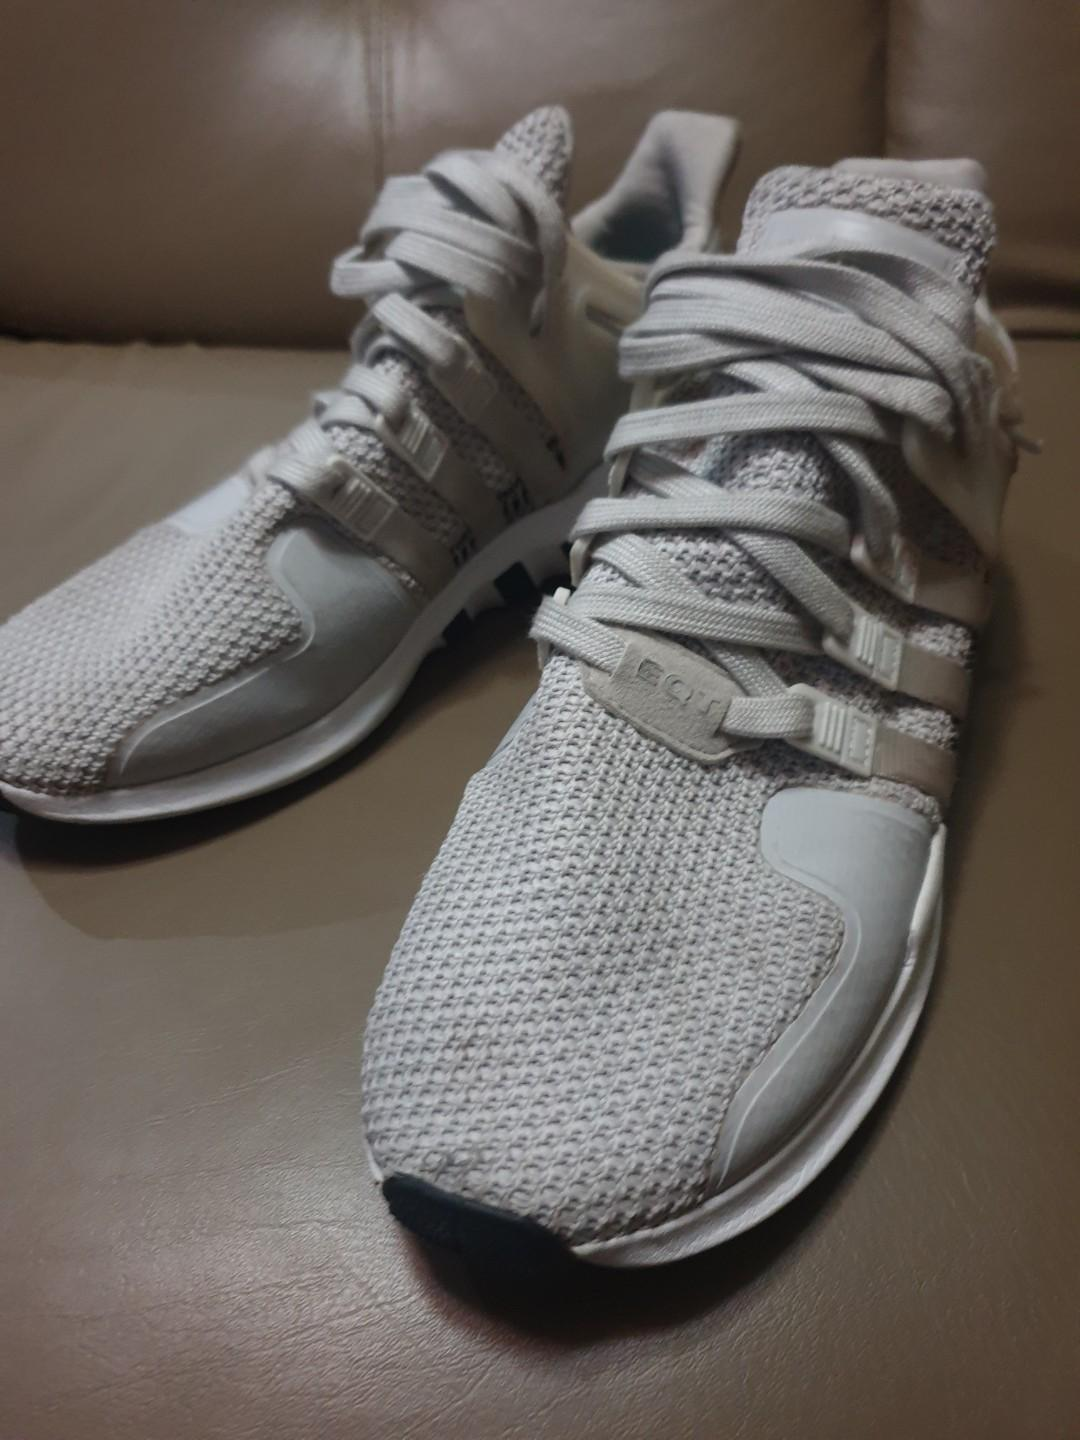 detailed look 0ad5c a13c8 Adidas EQT Support ADV Ftw White. Ftw White. Grey Size 10 US ...